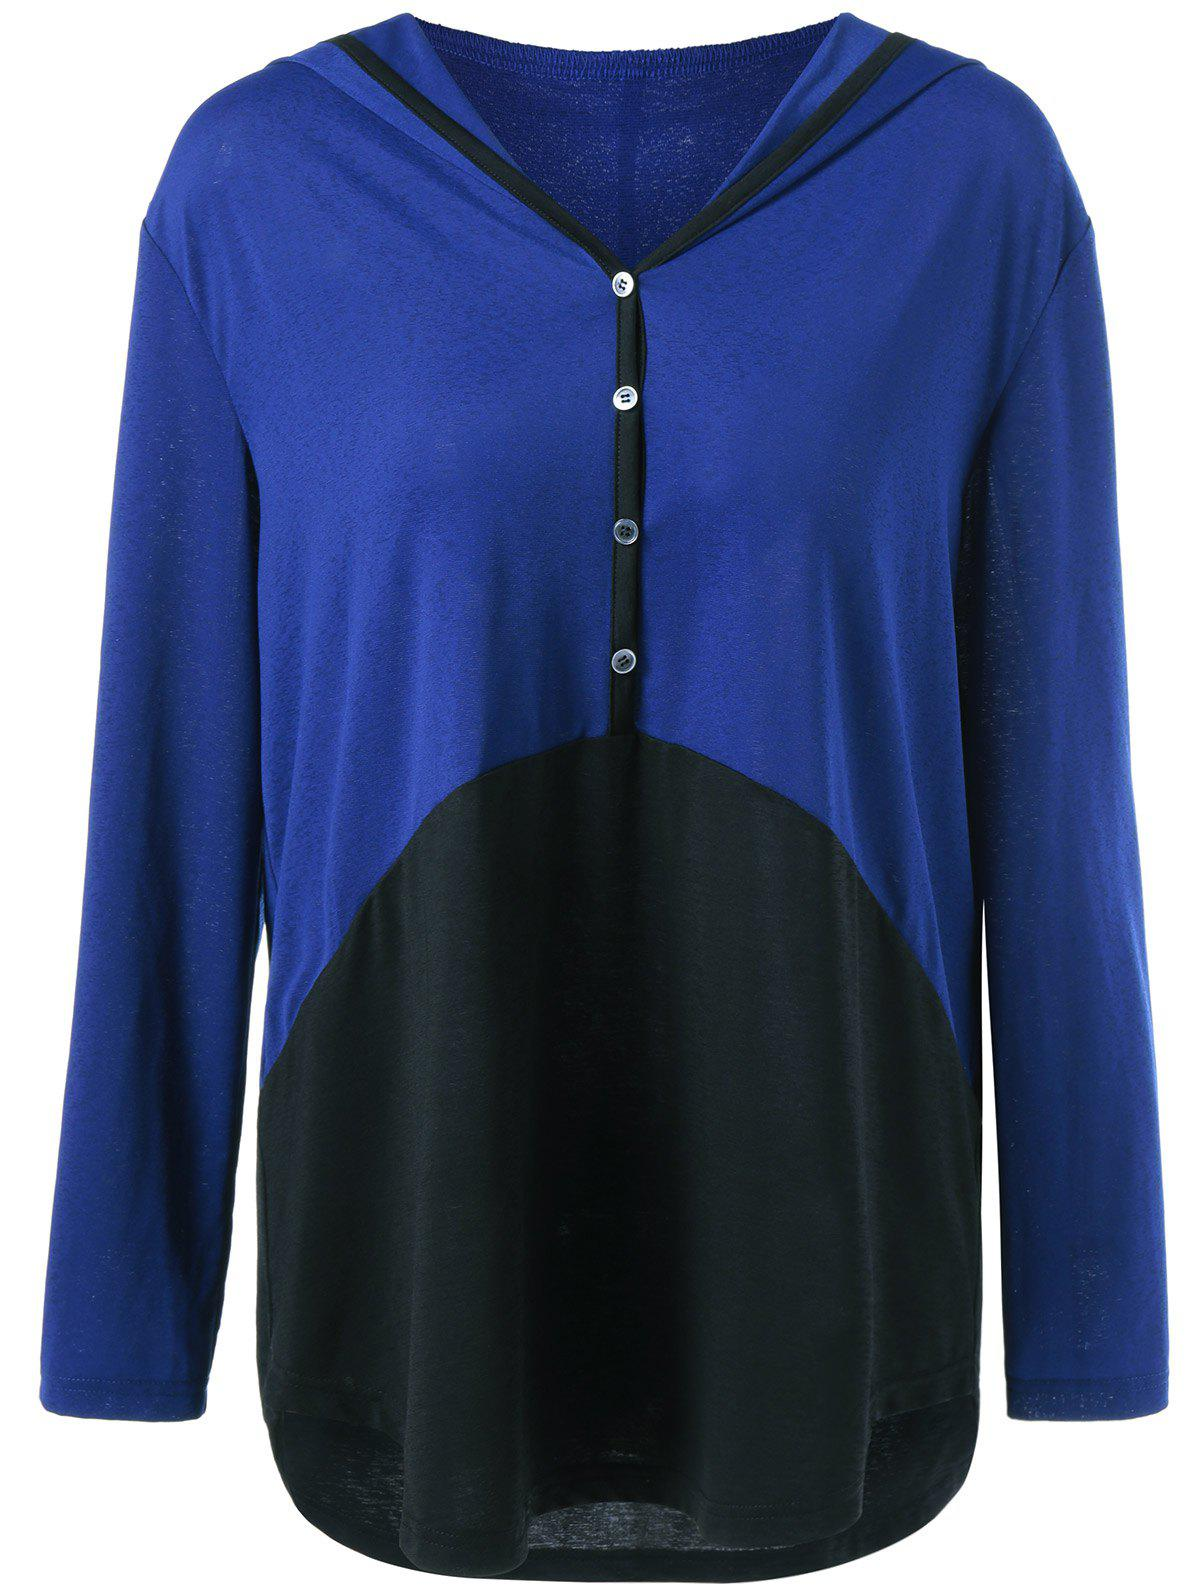 Plus Size Single Breasted High Low Hoodie - BLUE/BLACK XL